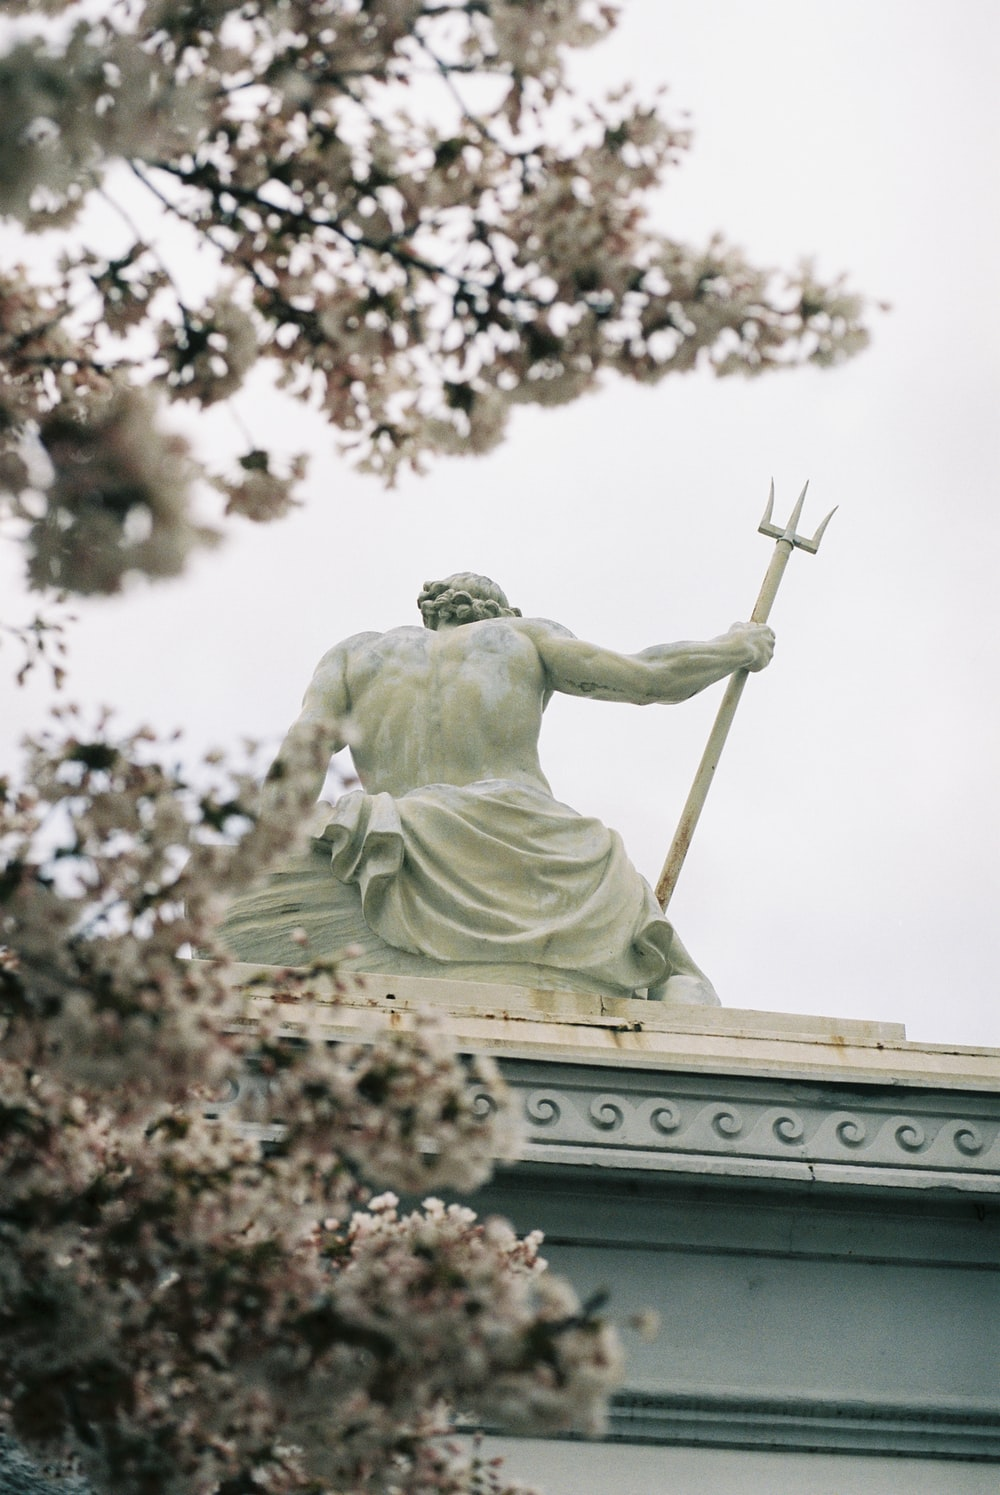 angel holding stick statue during daytime